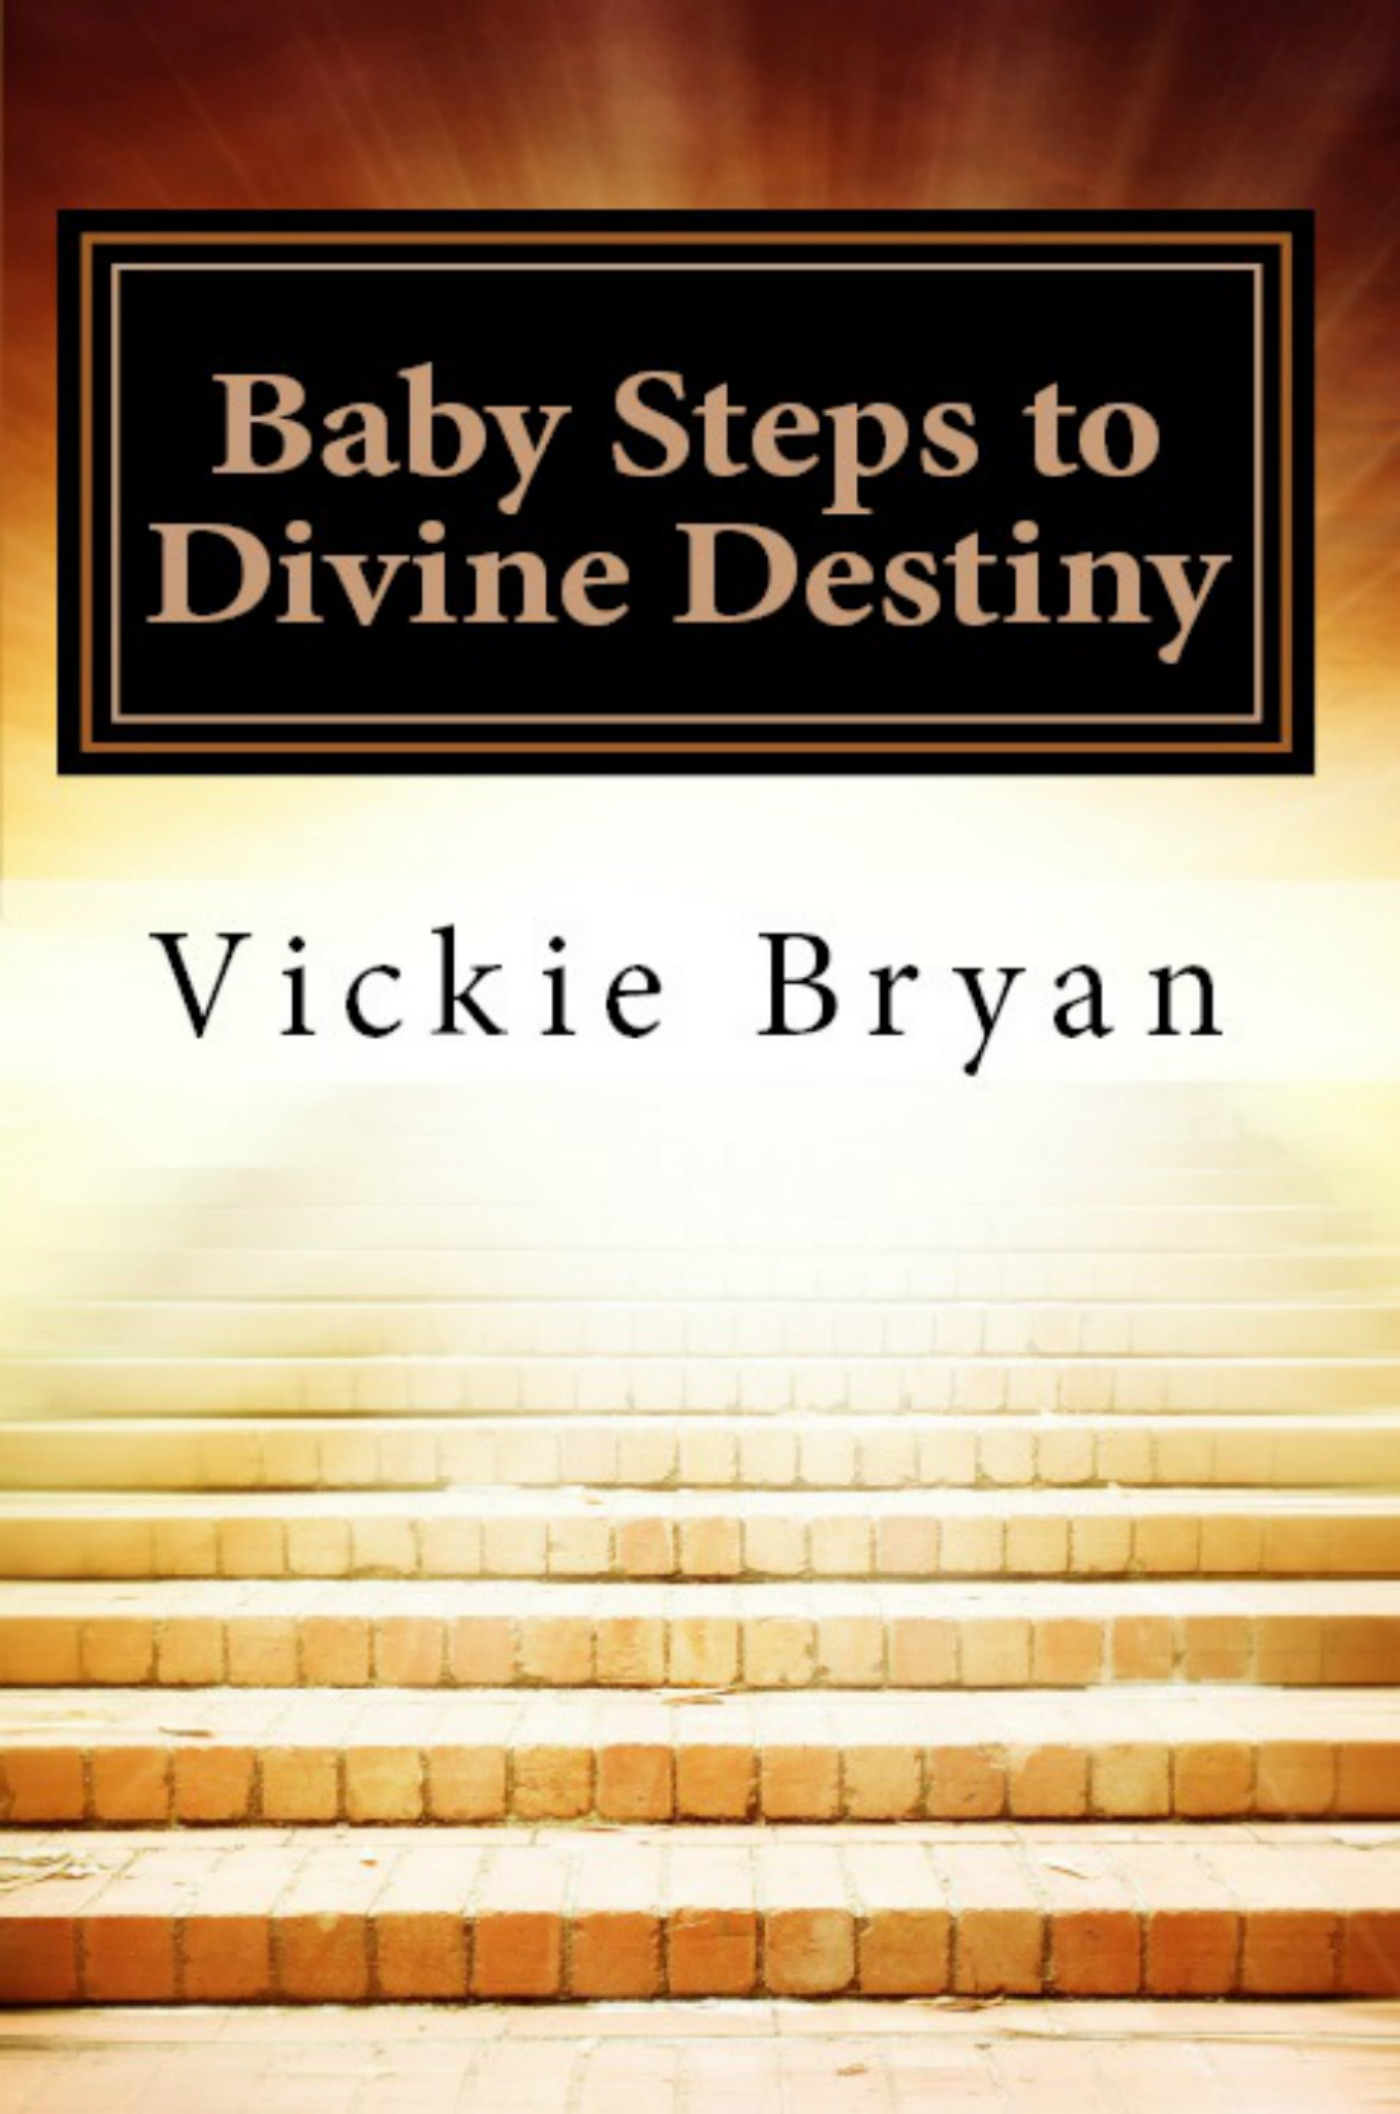 Baby Steps to Divine Destiny